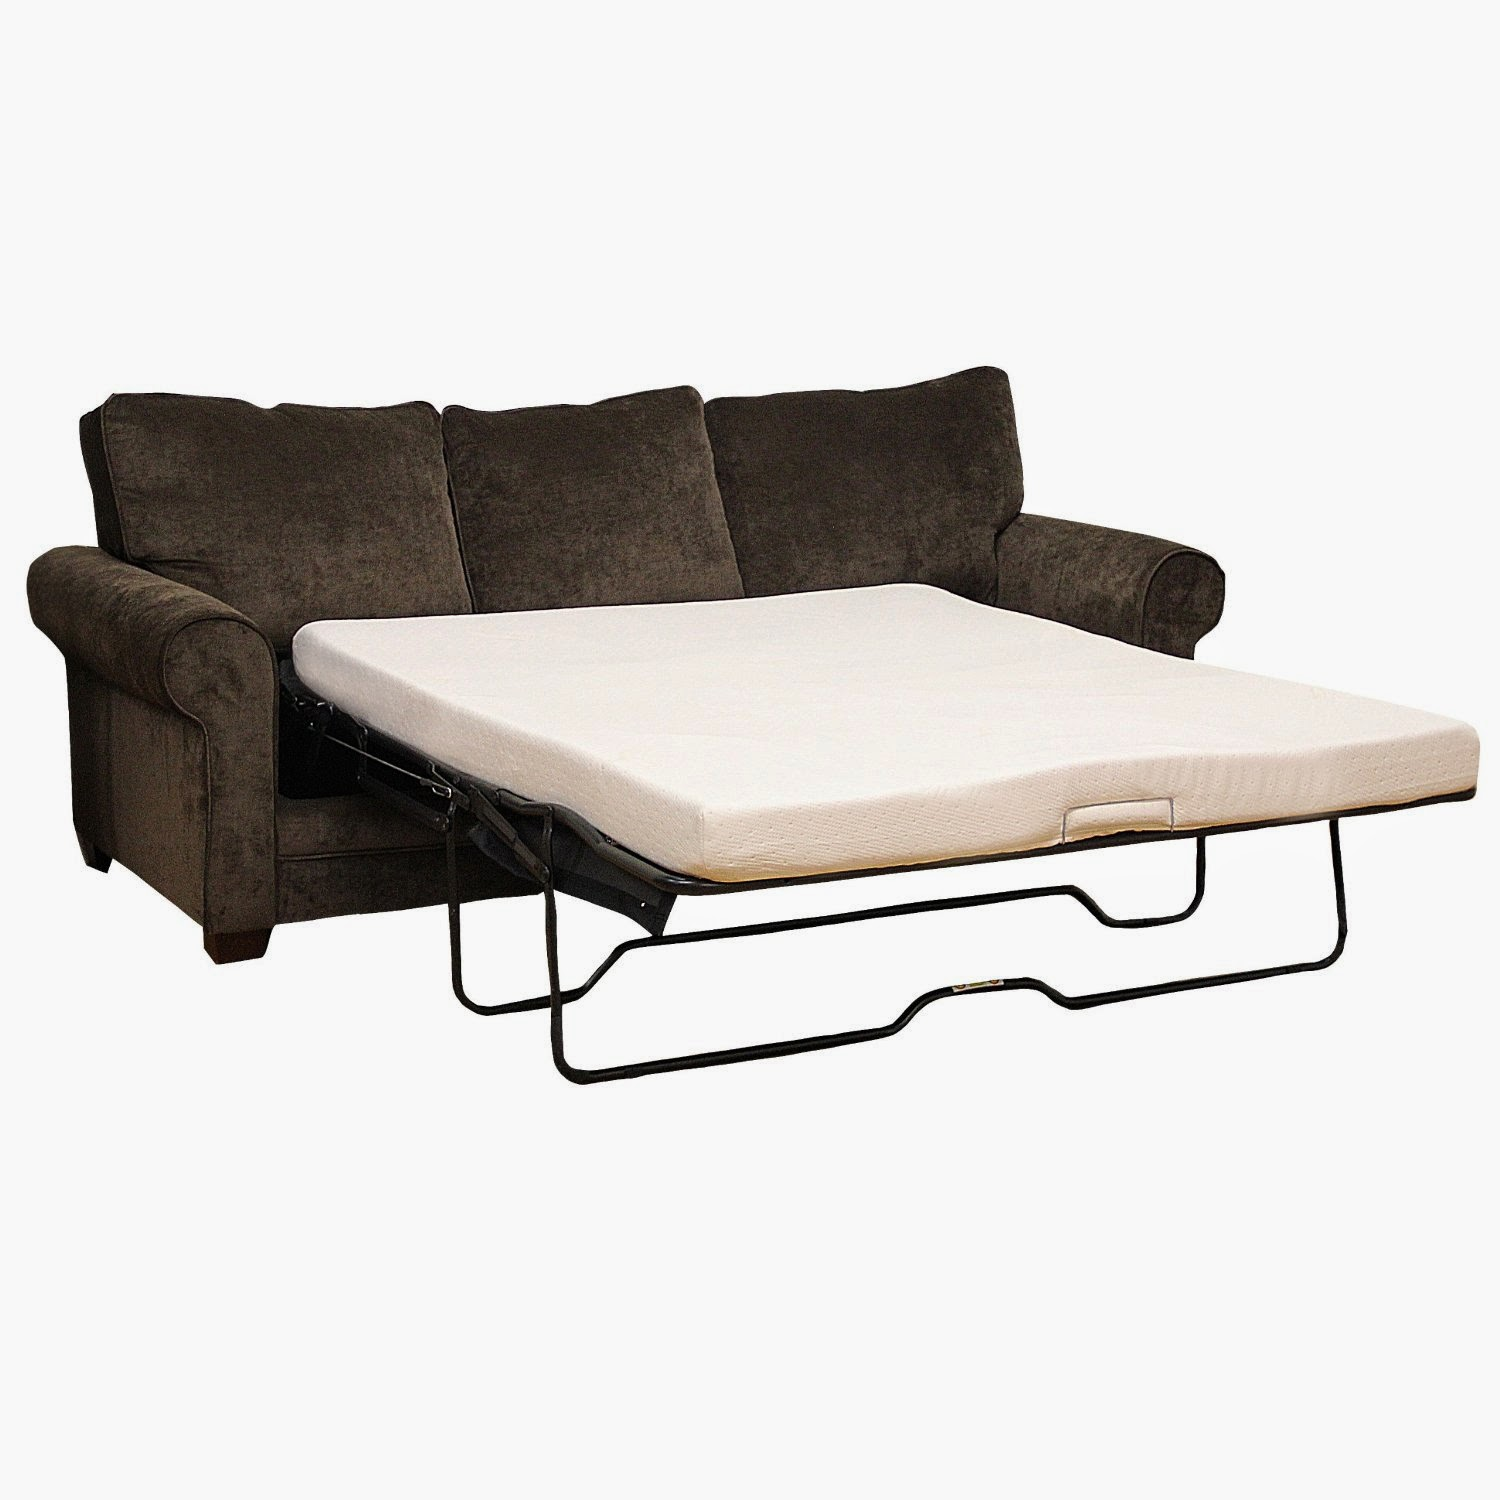 Fold out couch fold out couch bed Couch and bed